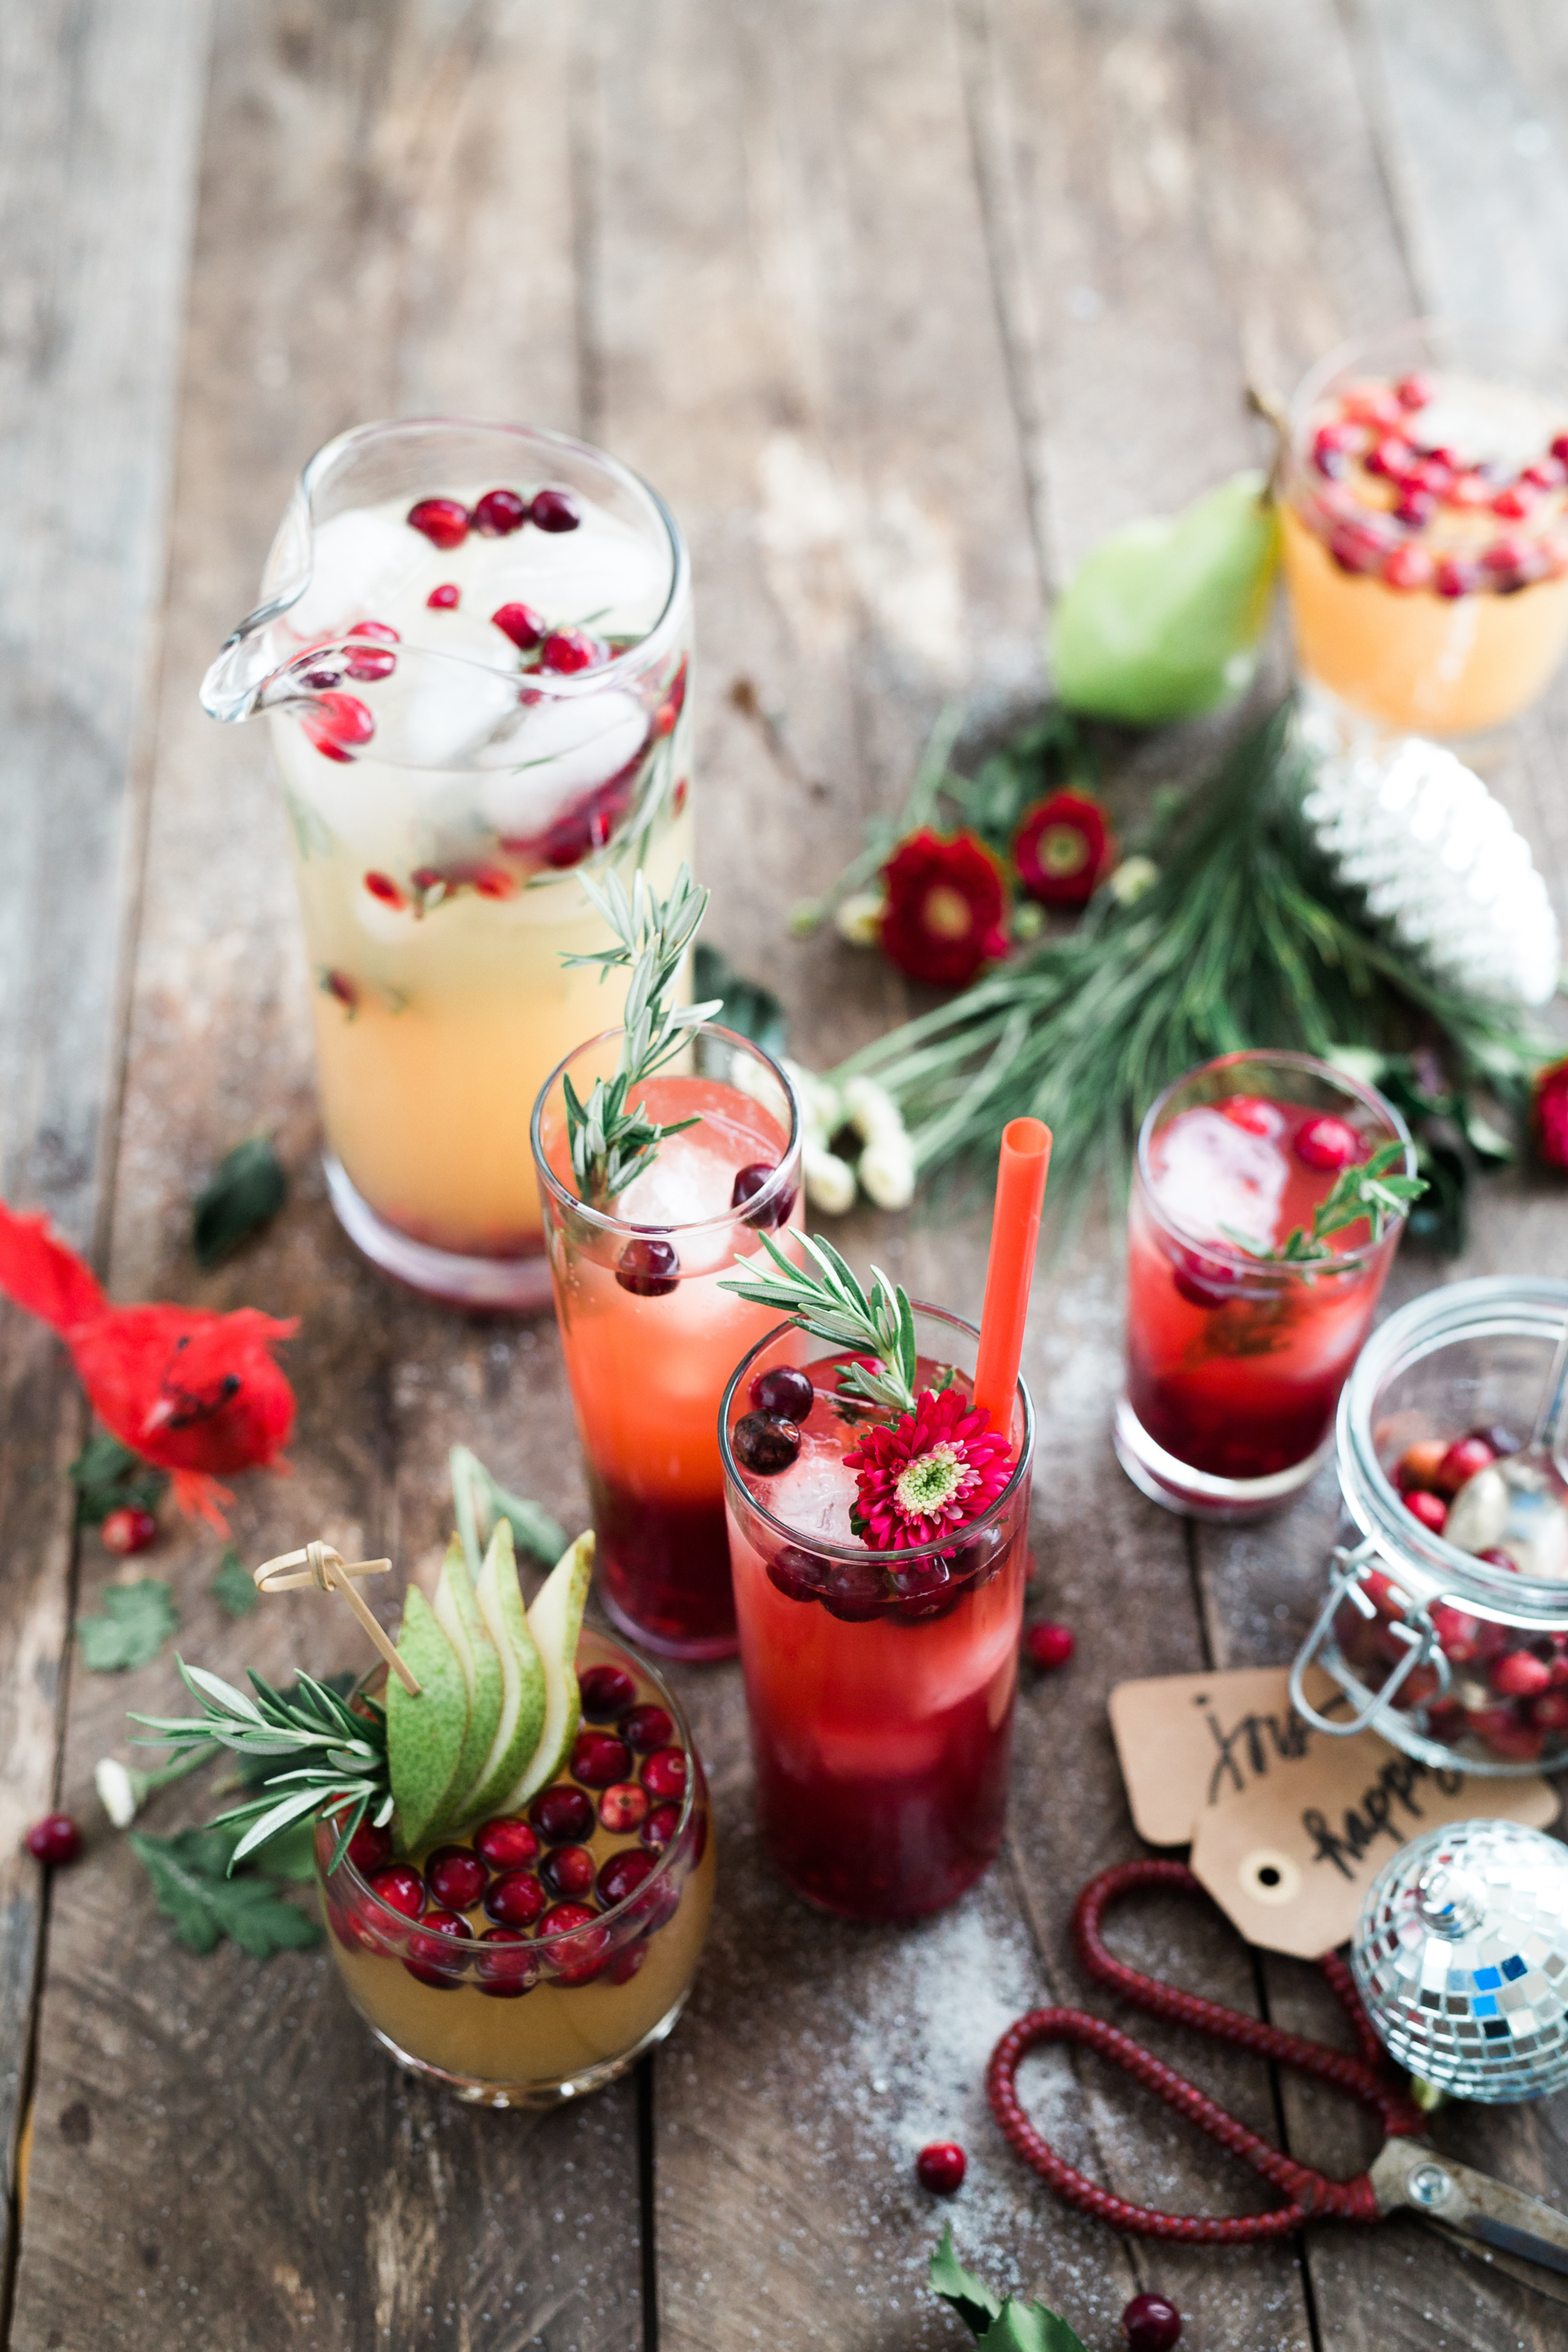 Holiday Buyers Guide Spirits Ed.  7:00PM